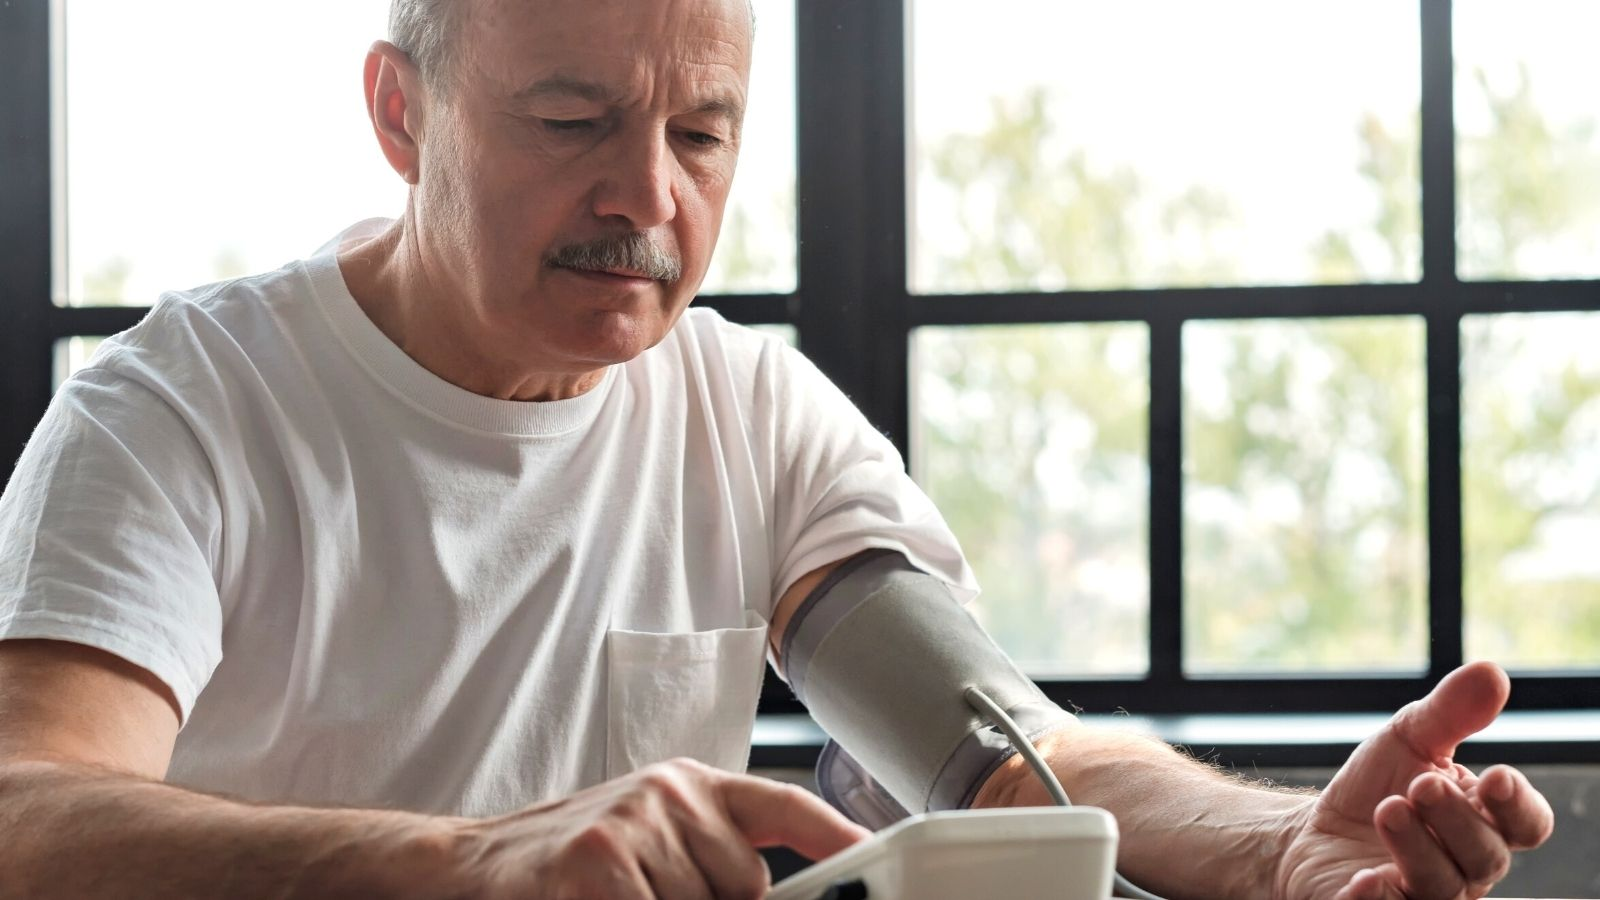 Lower High Blood Pressure With These 3 Tips